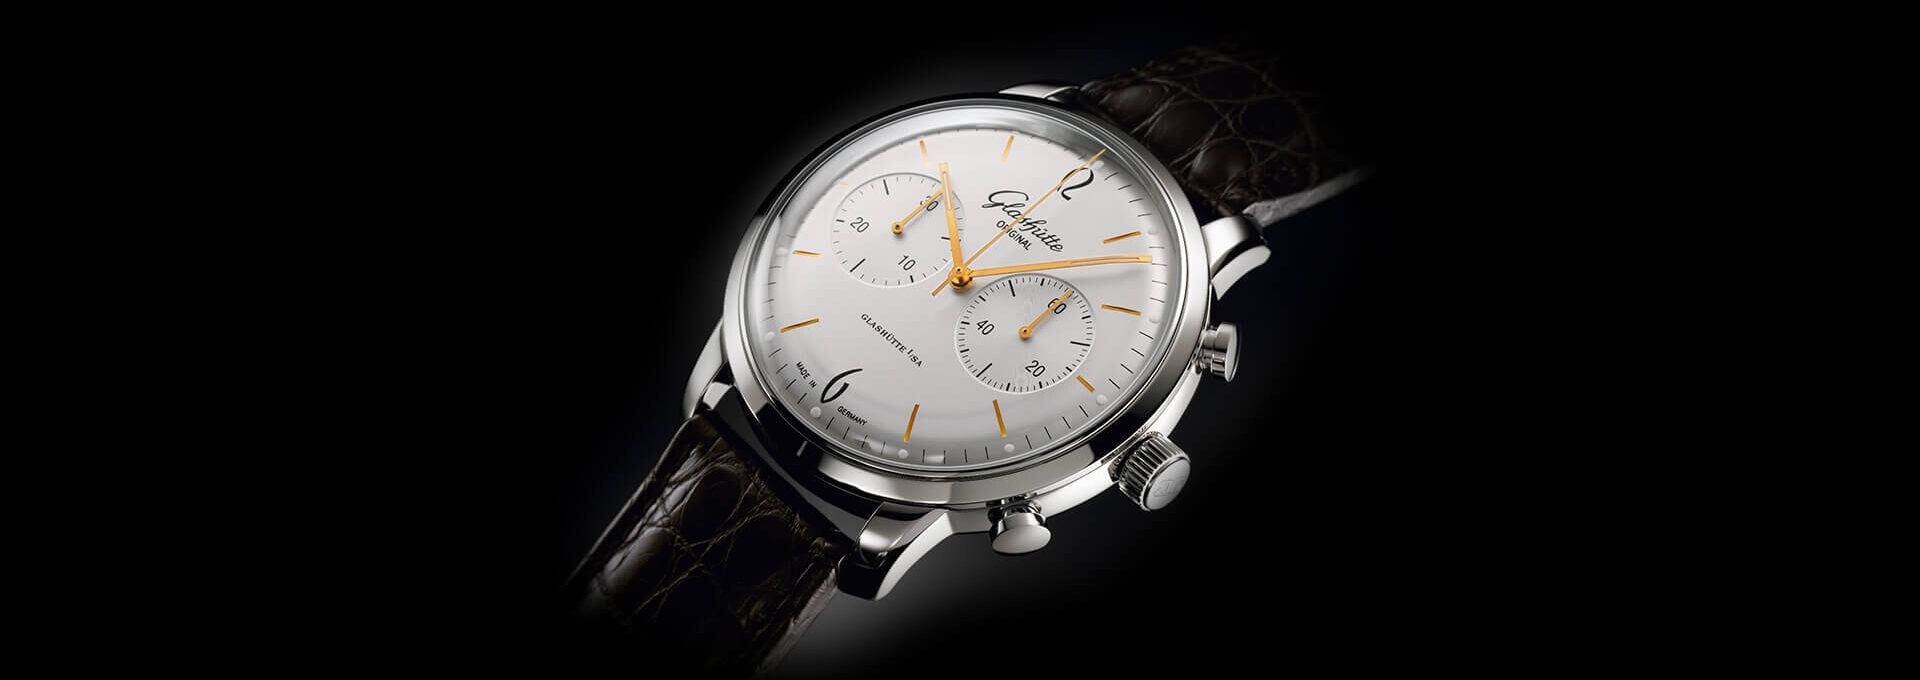 Glashuette_Original-W13934032204-Detail-4